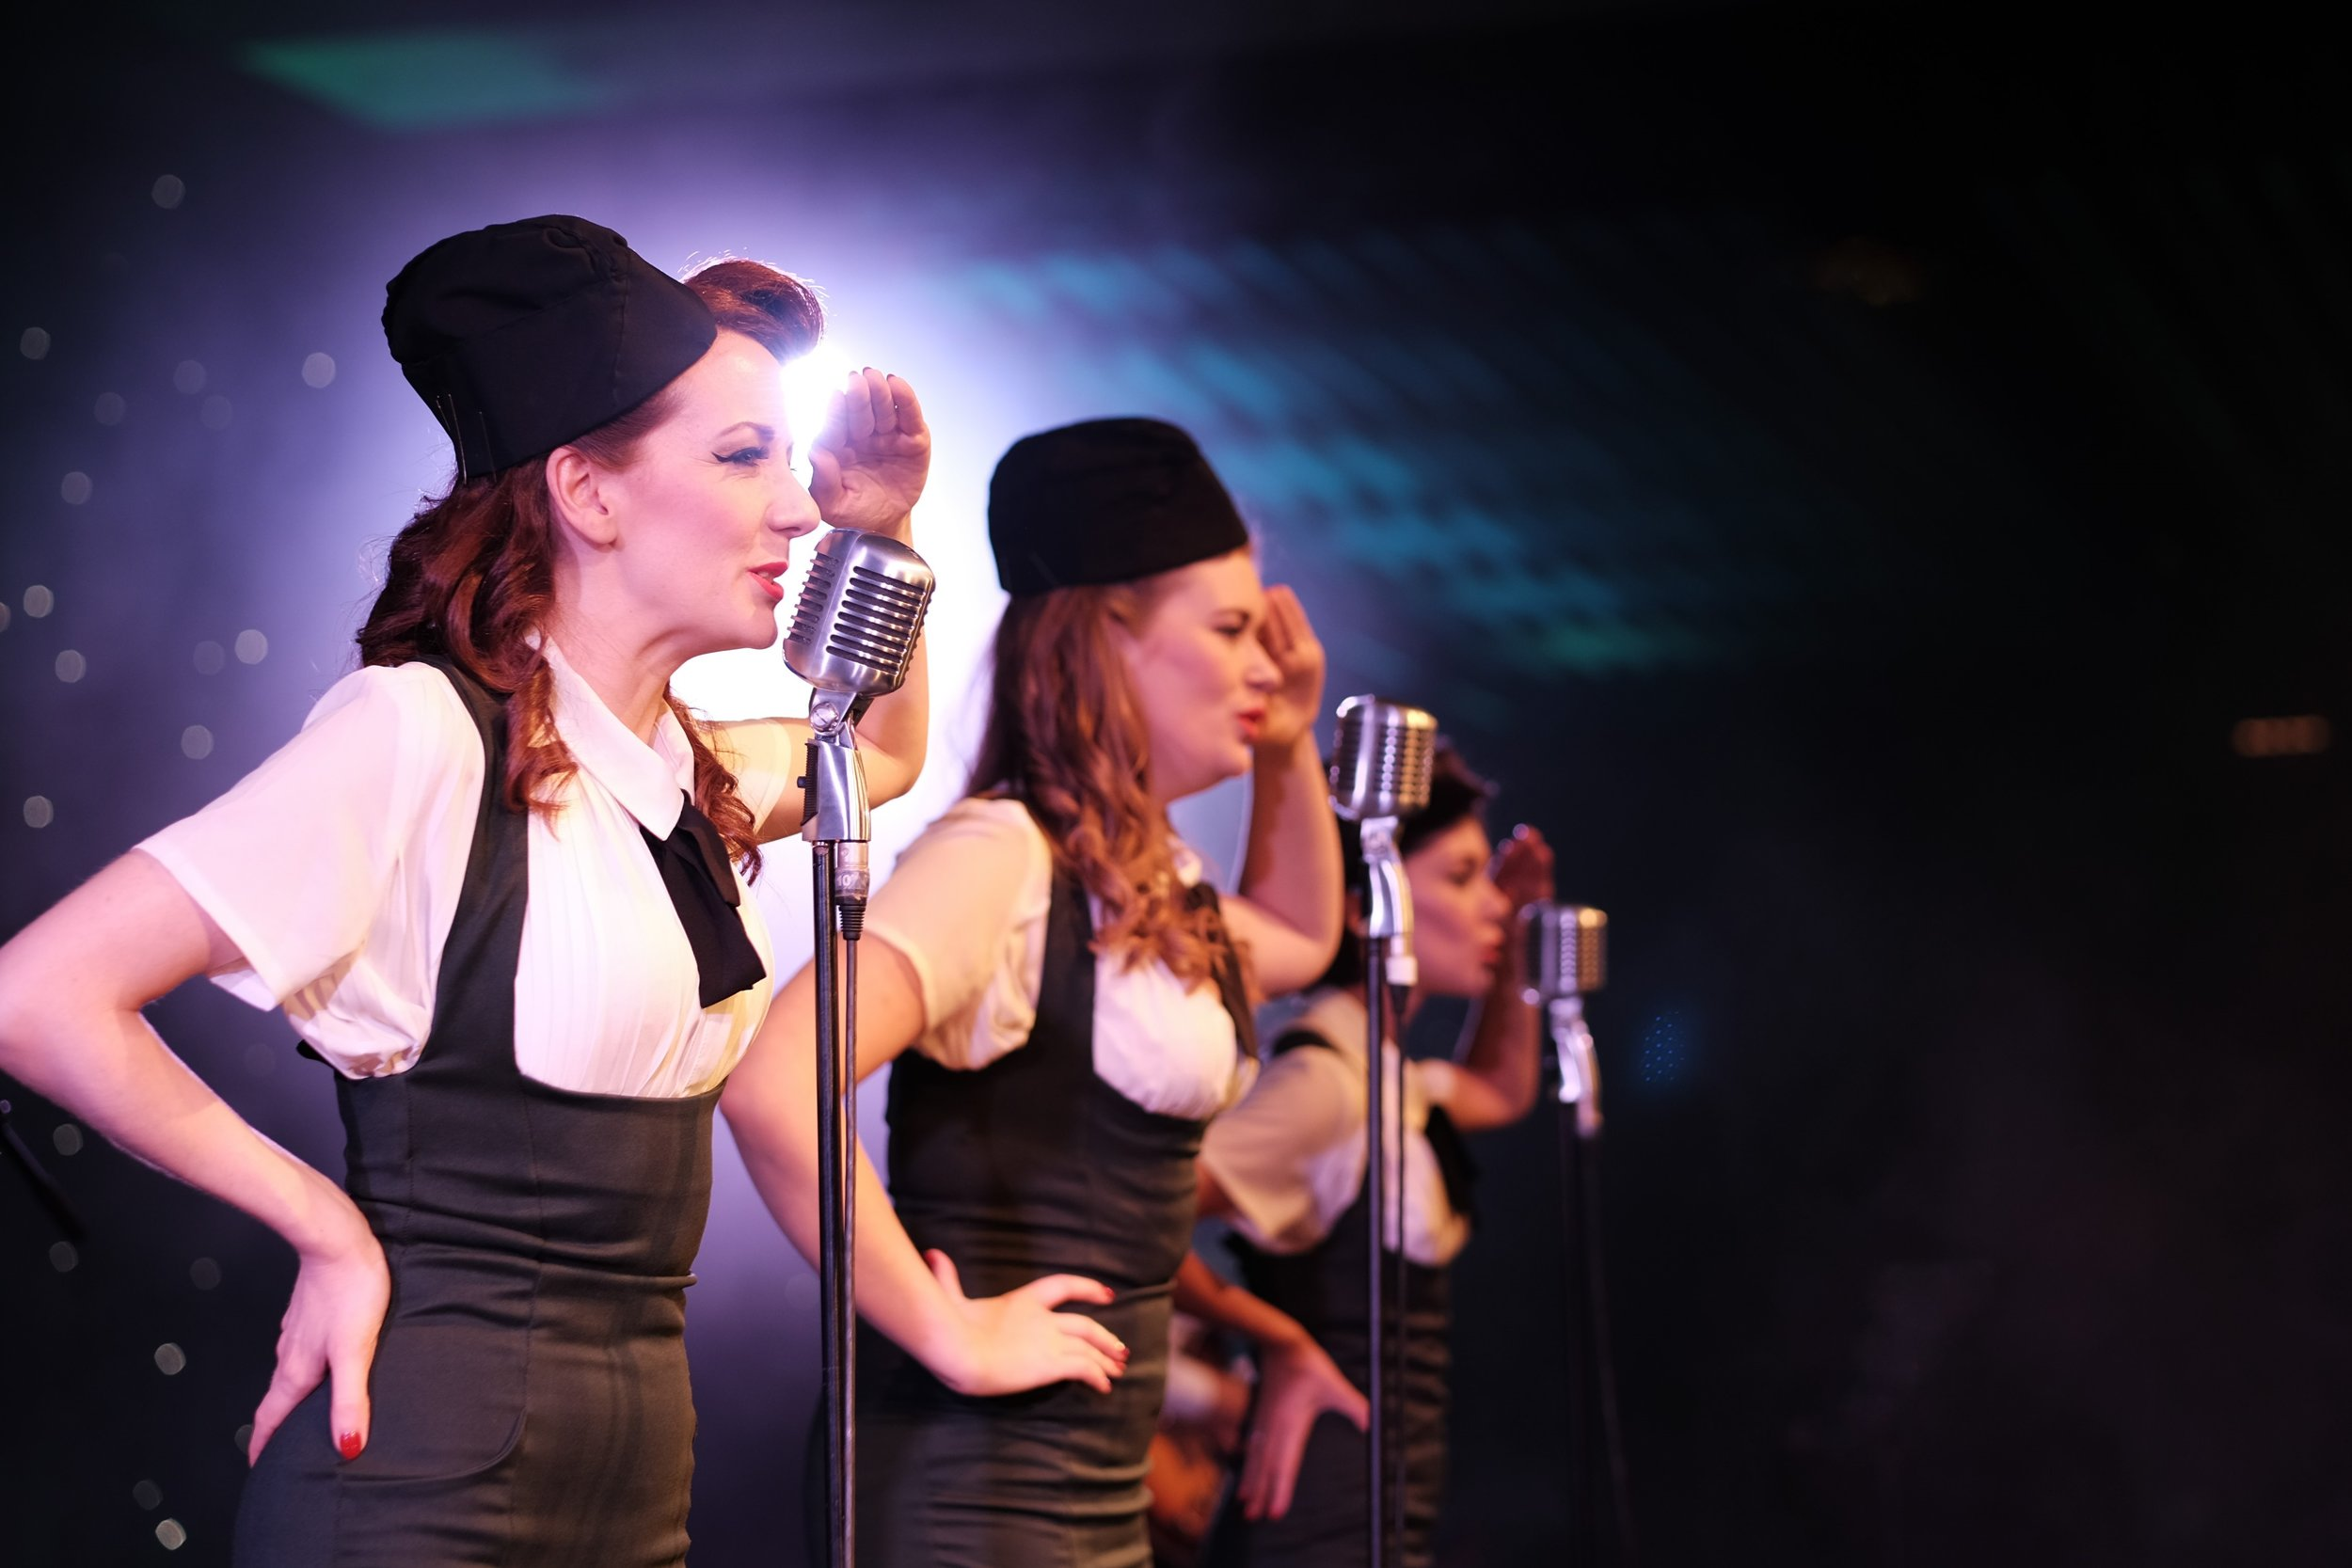 Leamington Spa Event photographer - travel industry event music concert photography singers retro birmingham.JPG